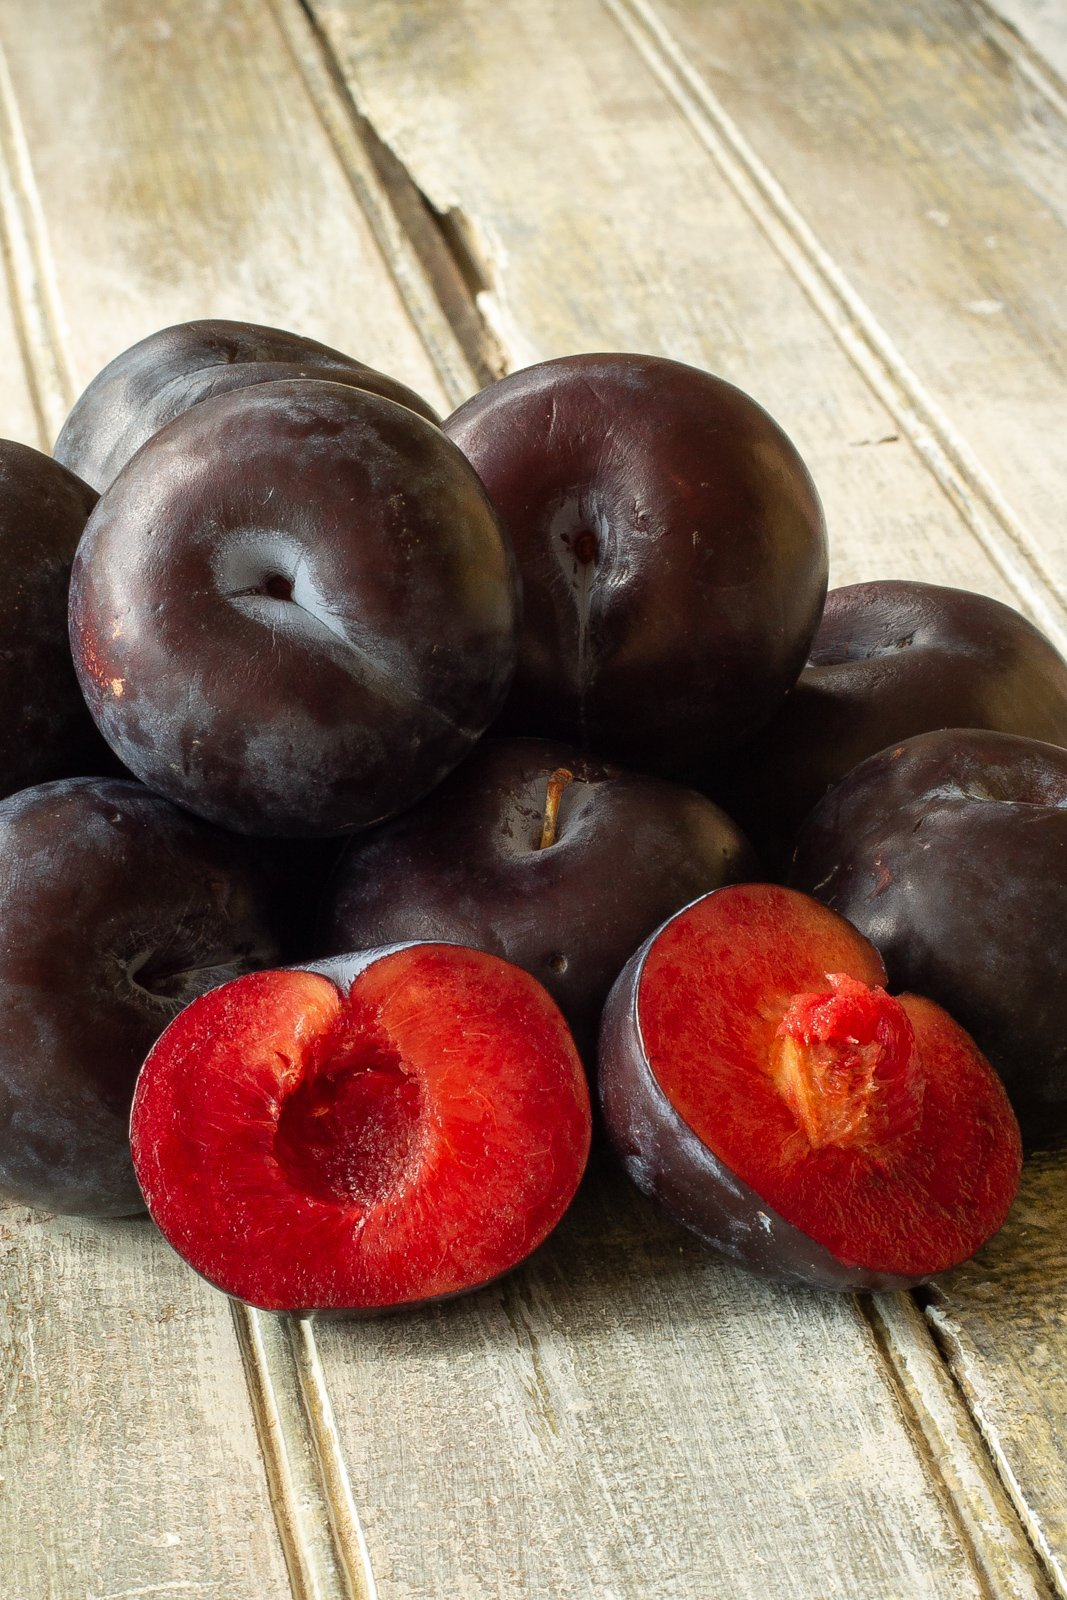 a pile of plums with a plum cut open to reveal the red fruit